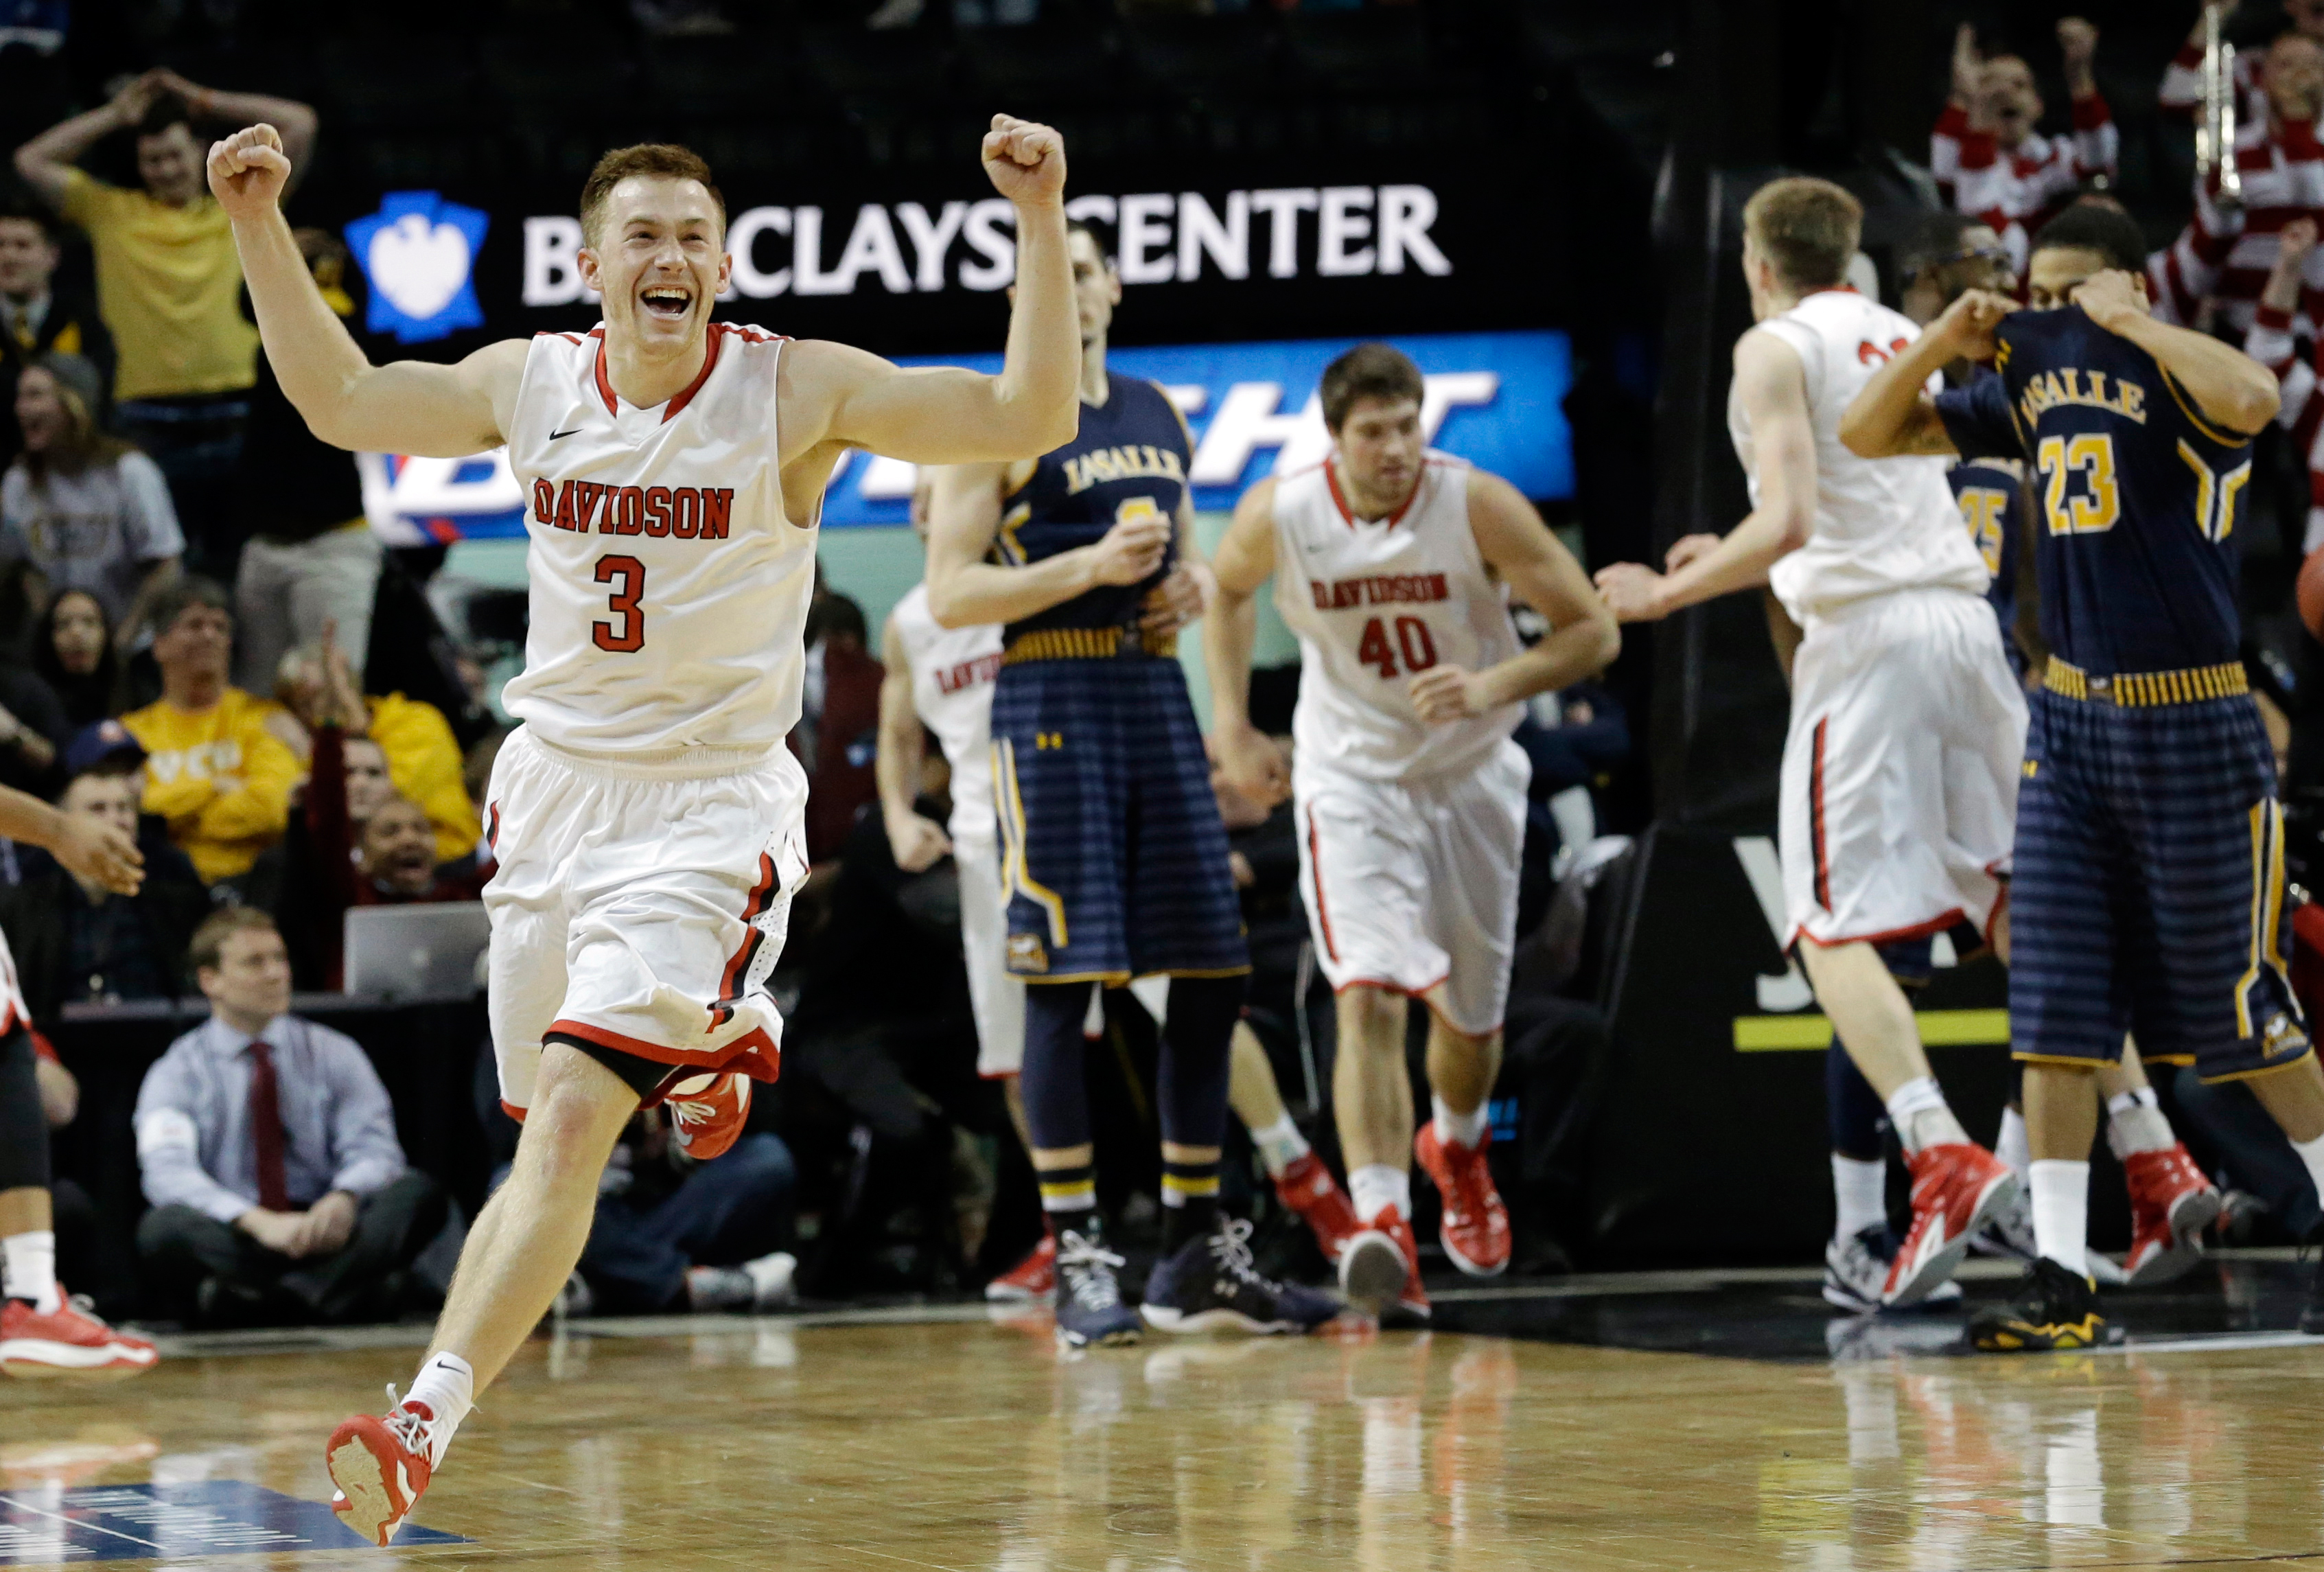 Davidson guard Brian Sullivan (3) celebrates after their 67-66 win over La Salle in an NCAA college basketball game in the quarterfinals of the Atlantic 10 Conference tournament in New York, Friday, March 13, 2015.